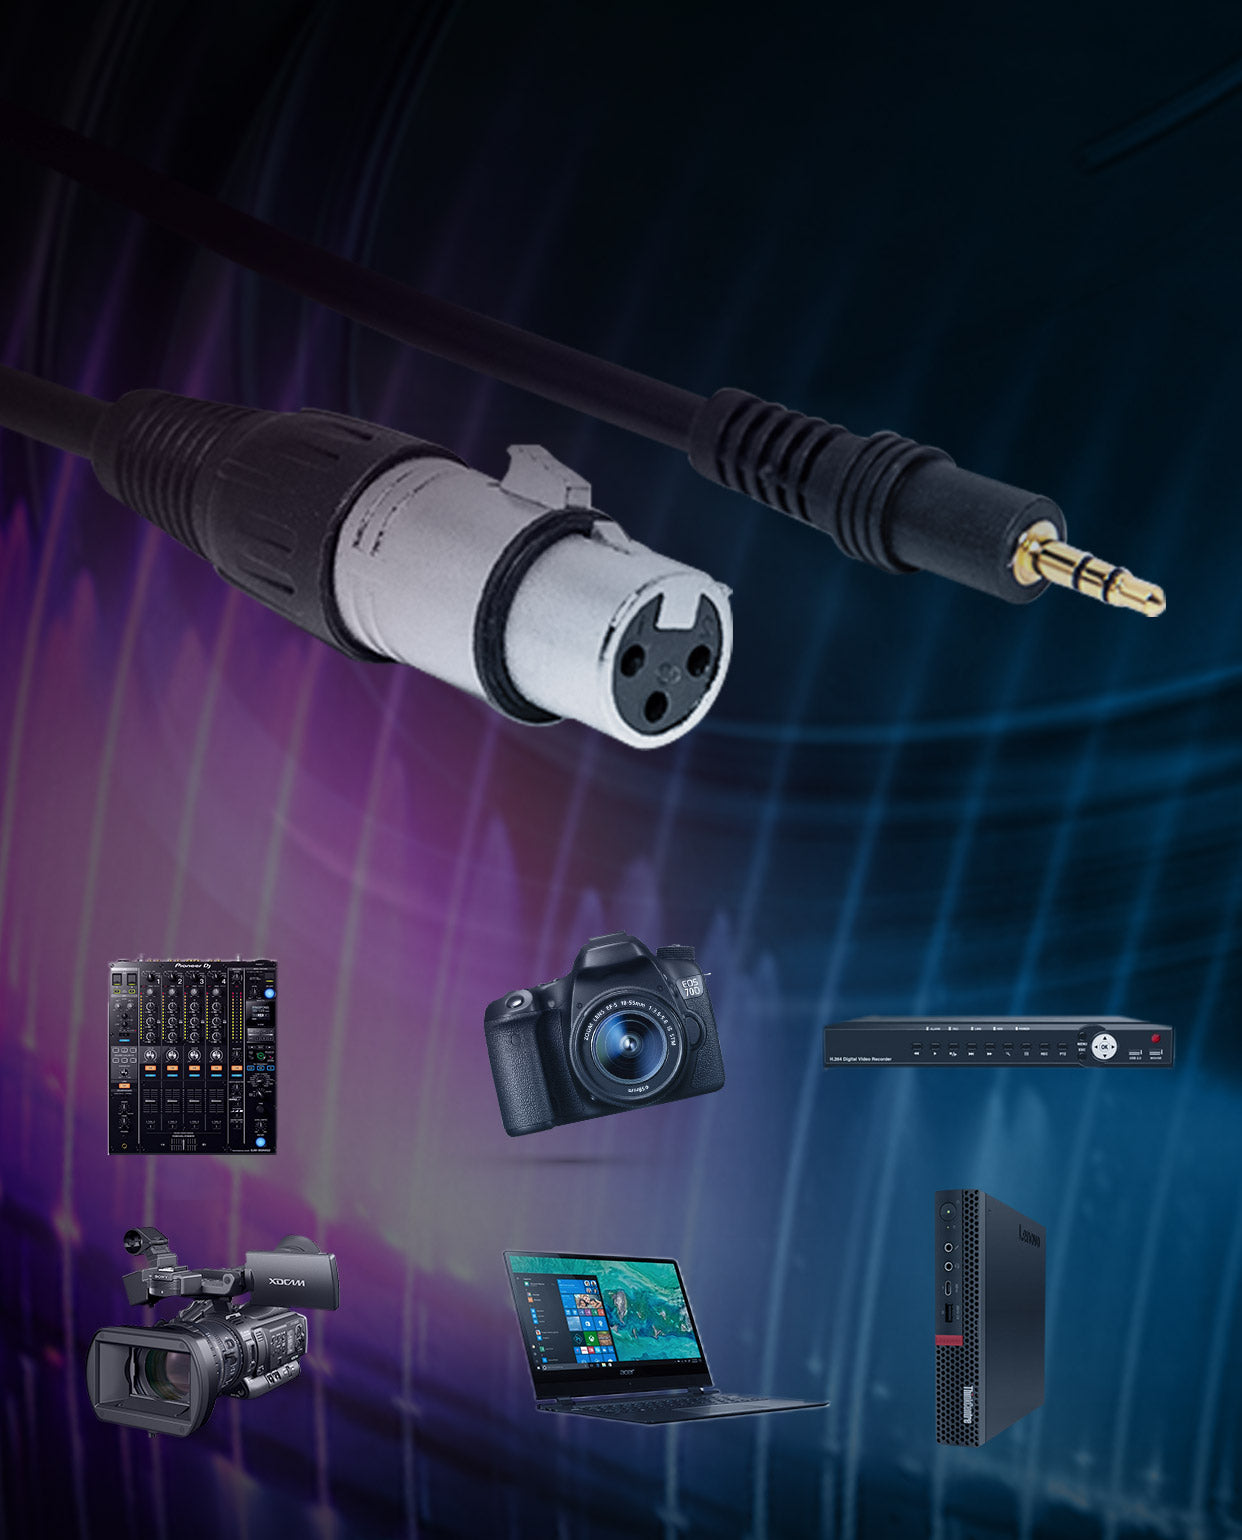 SYNCO Mic-E10 Intended for Wide Compatibility